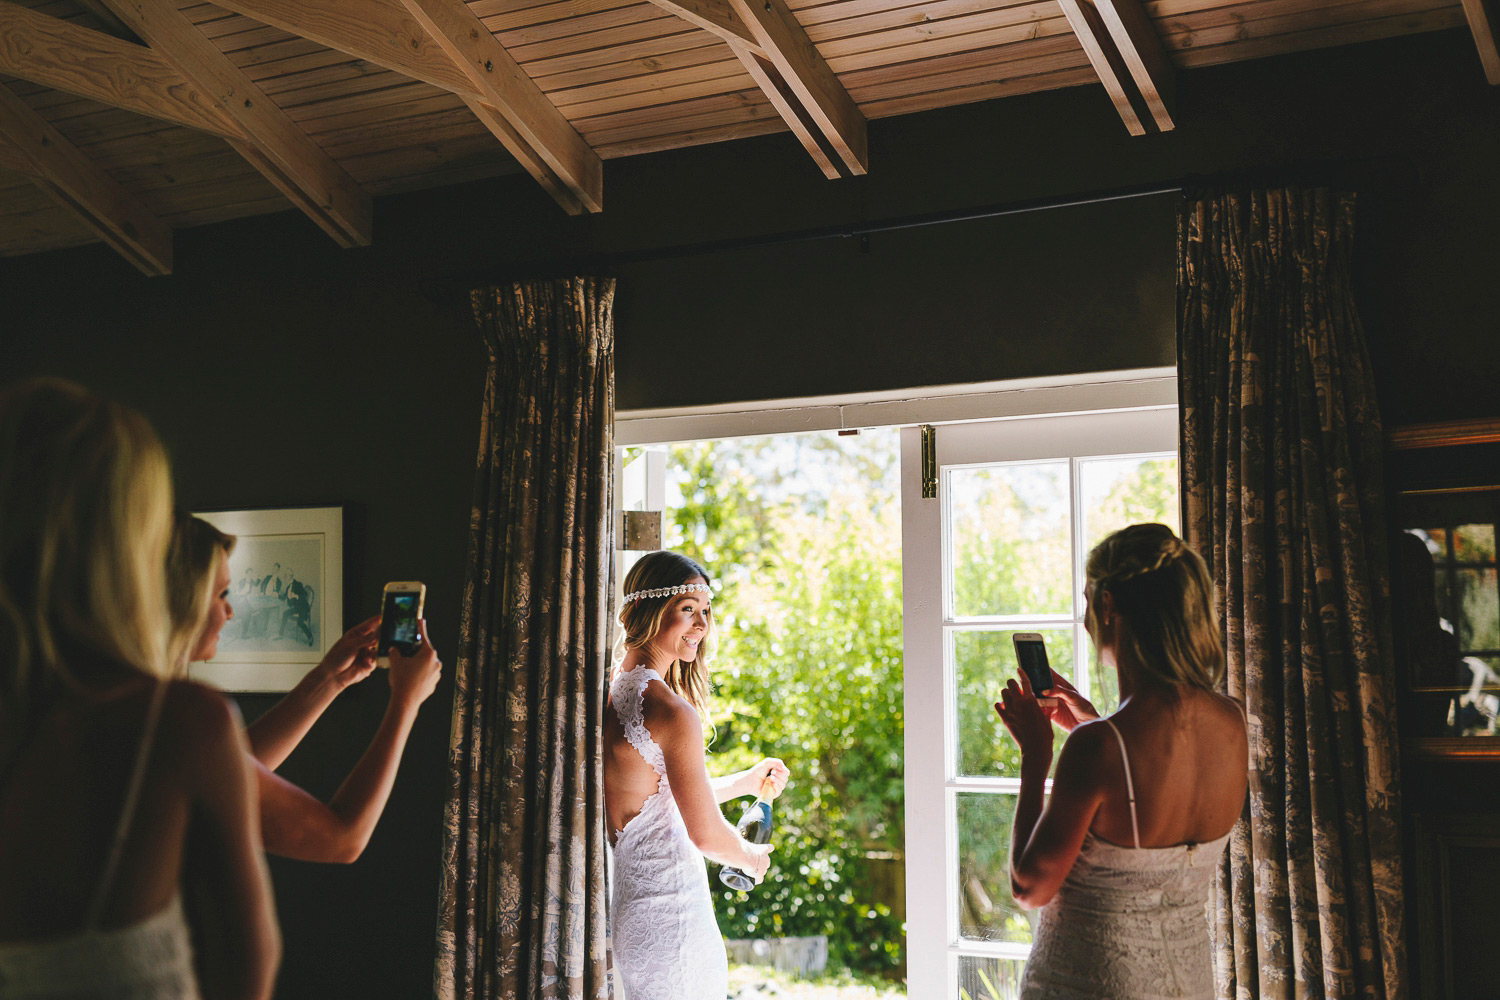 cape-town-wedding-photographer-western-cape-constansia-camilla-charlie-ray21.jpg